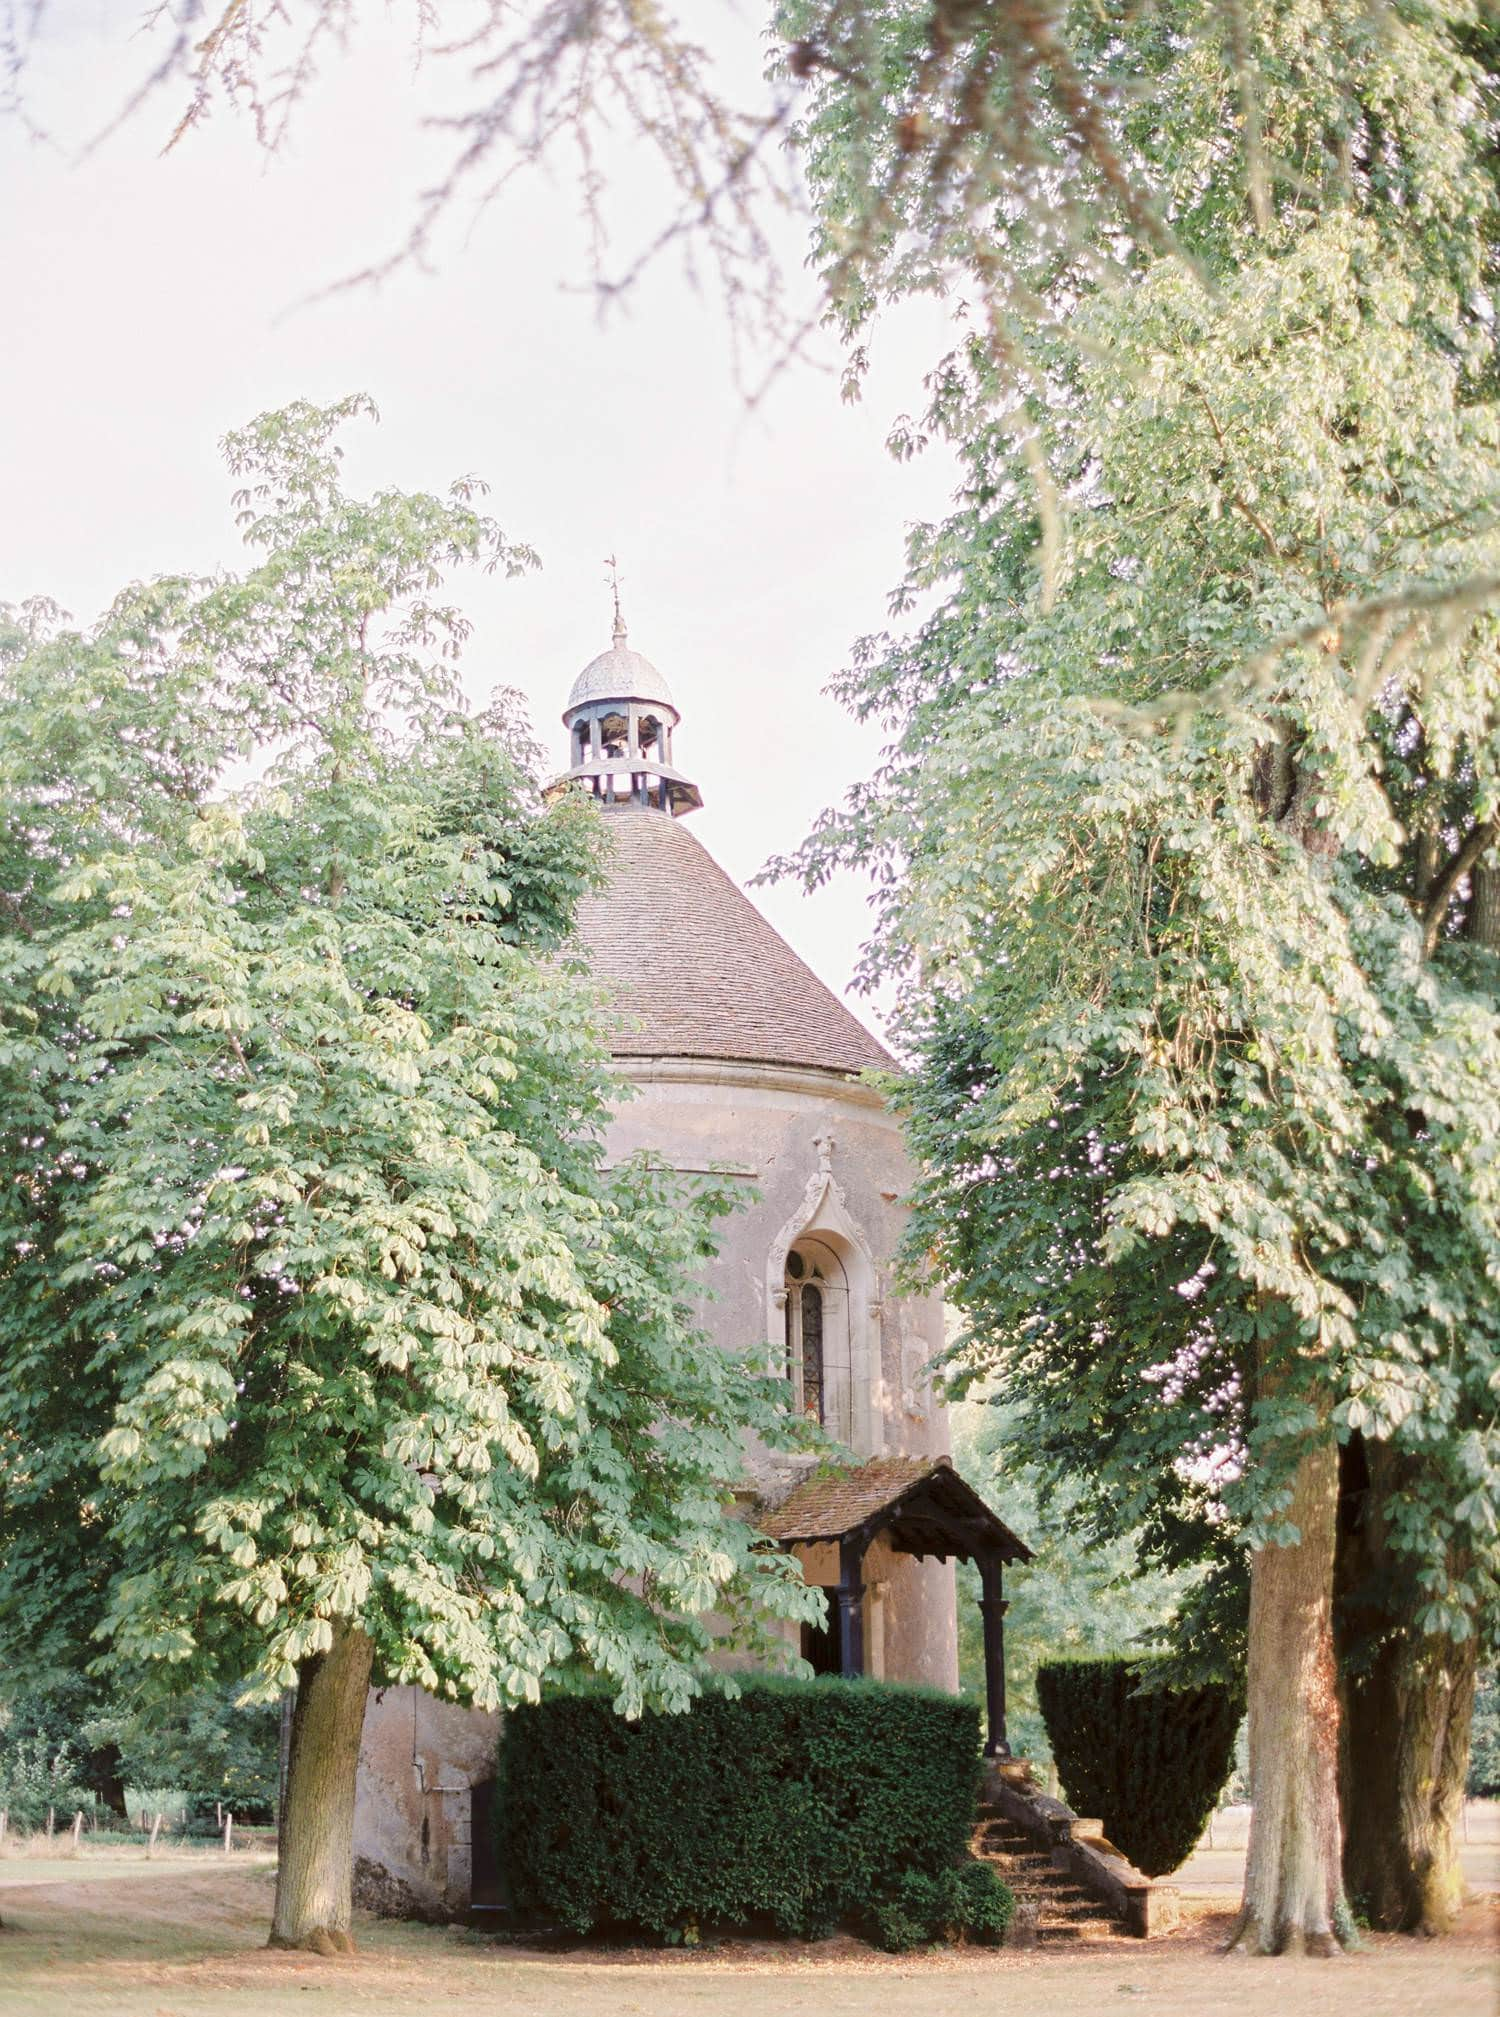 Chapel of Chateau de Bouthonvilliers